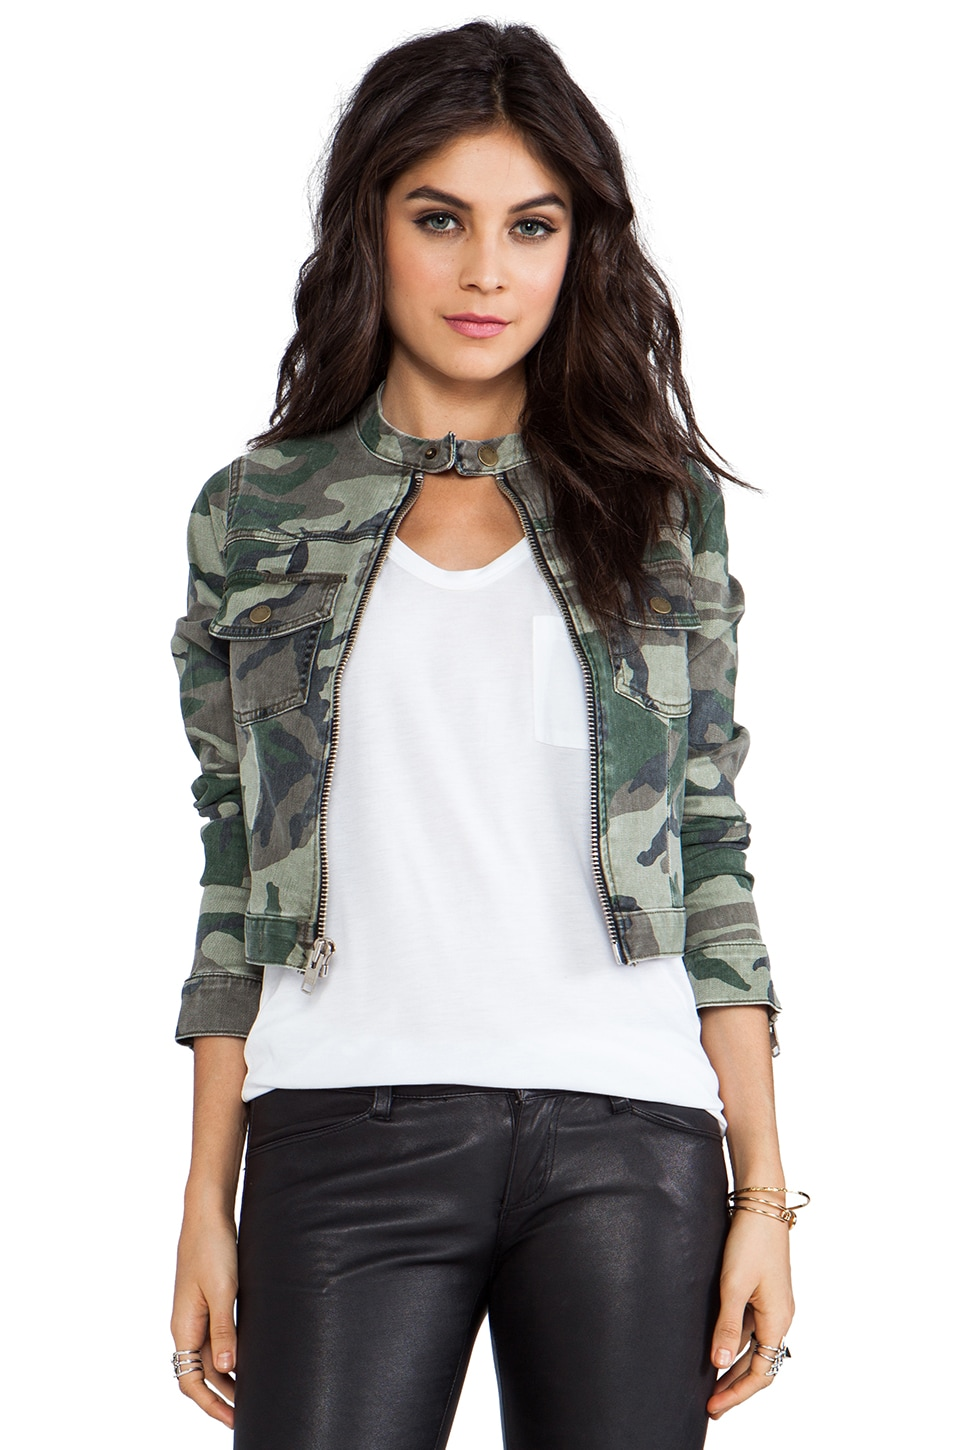 TEXTILE Elizabeth and James Wesley Jacket in Olive Camo